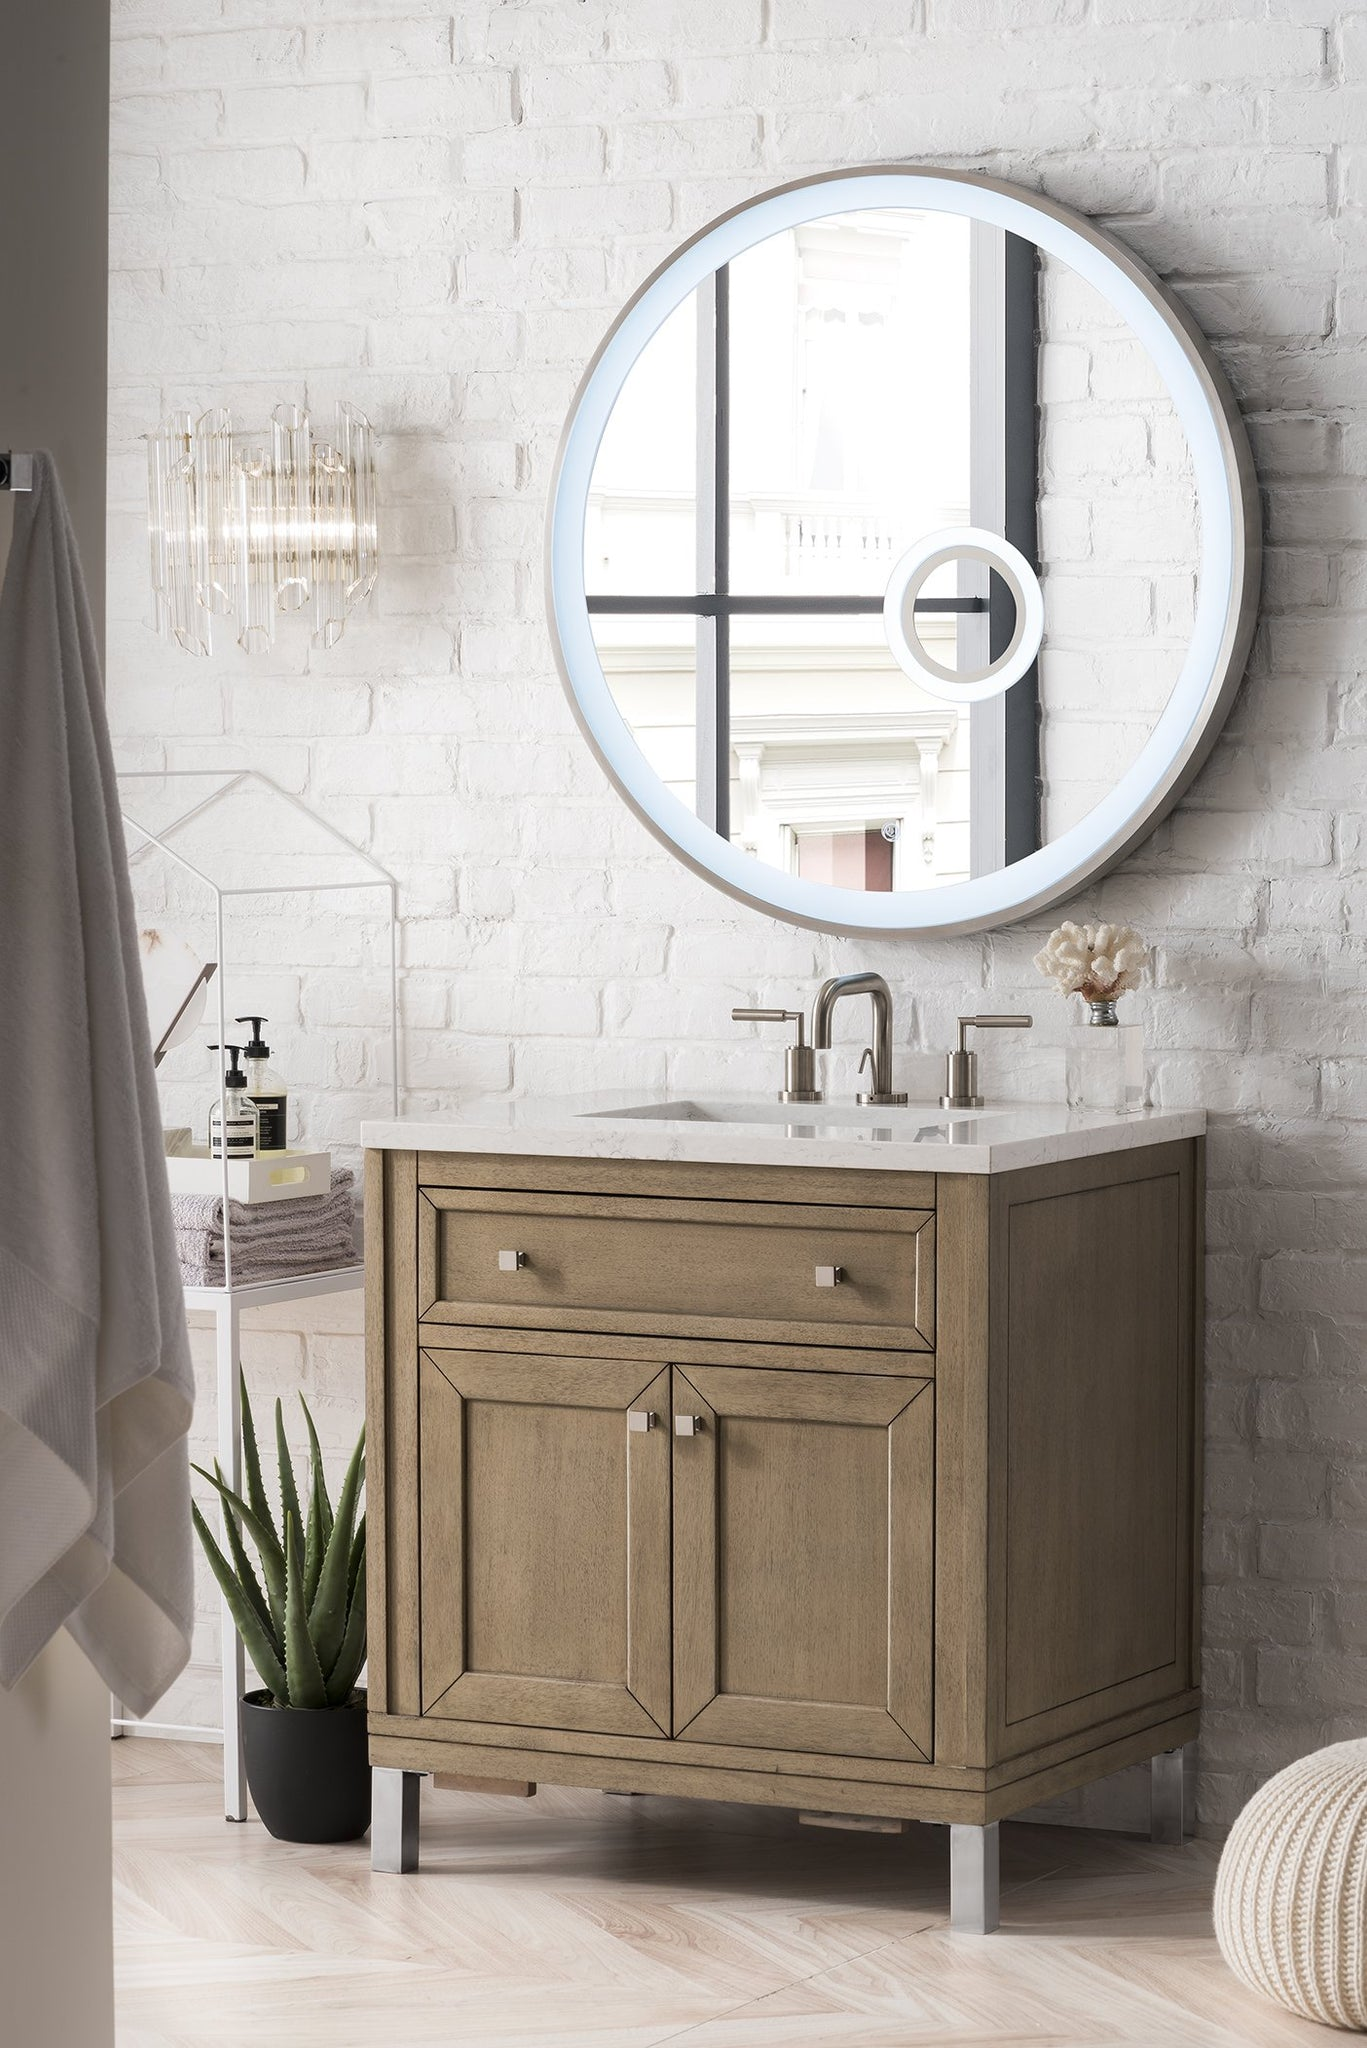 "Chicago 30"" Single Bathroom Vanity Single Bathroom Vanity James Martin Vanities"